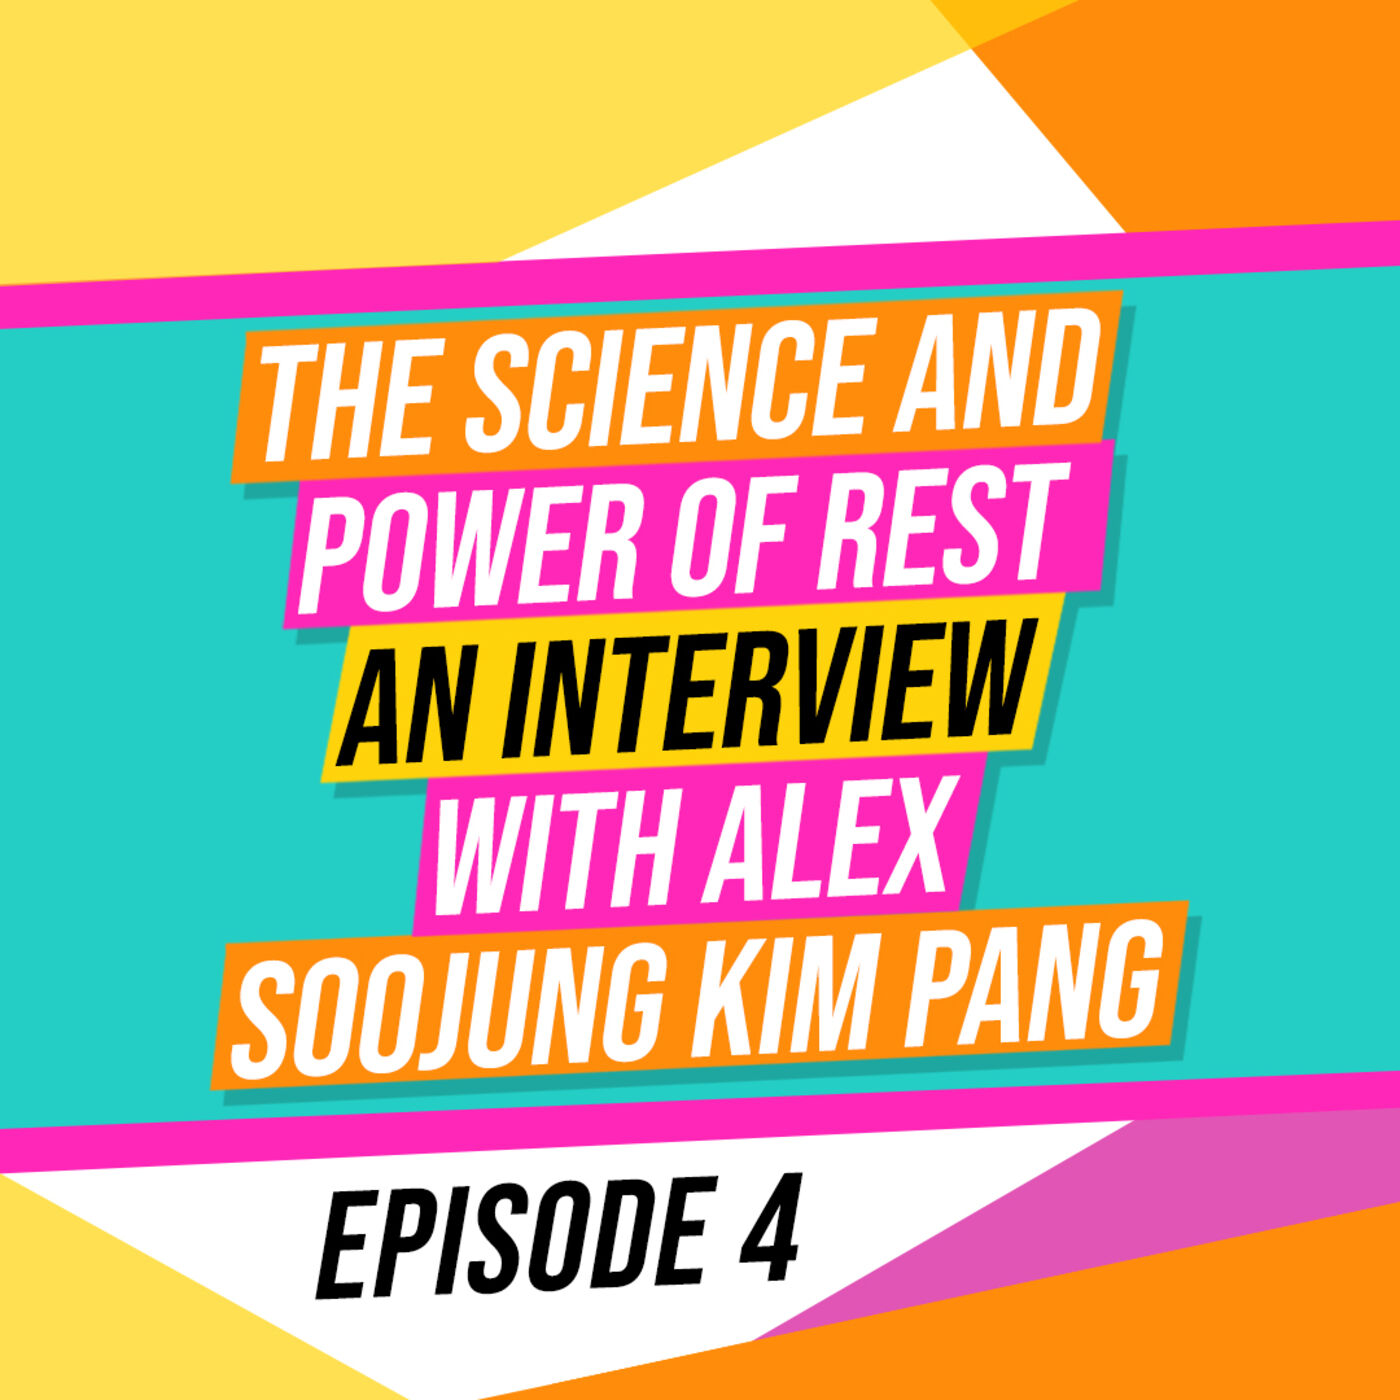 The science and power of rest - An interview with Alex Soojung-Kim Pang